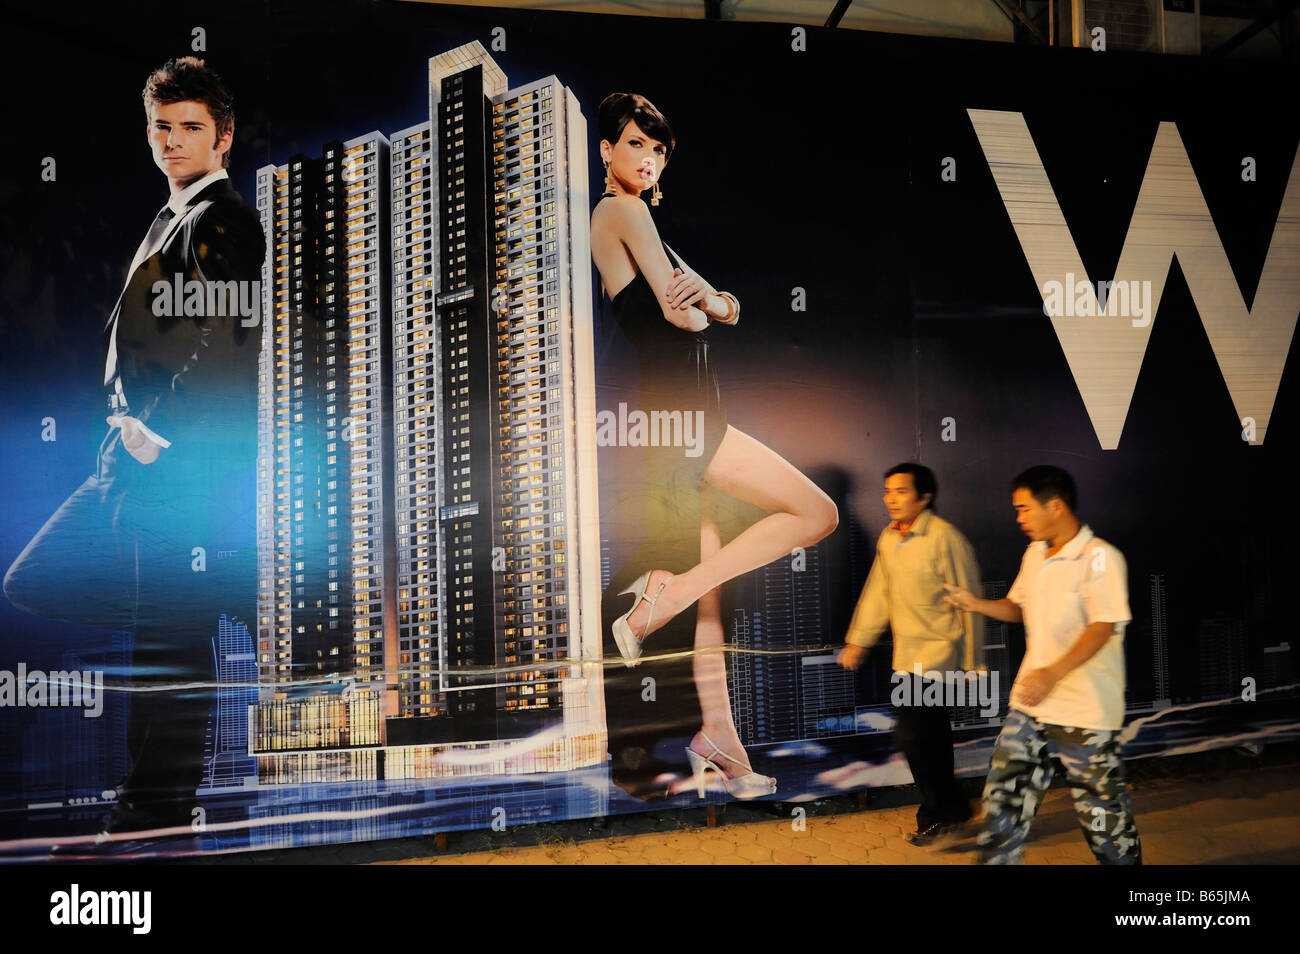 Chinese men walk past a billboard featuring a luxurious hotel being built in Guangzhou,China. 26-Nov-2008 - Stock Image